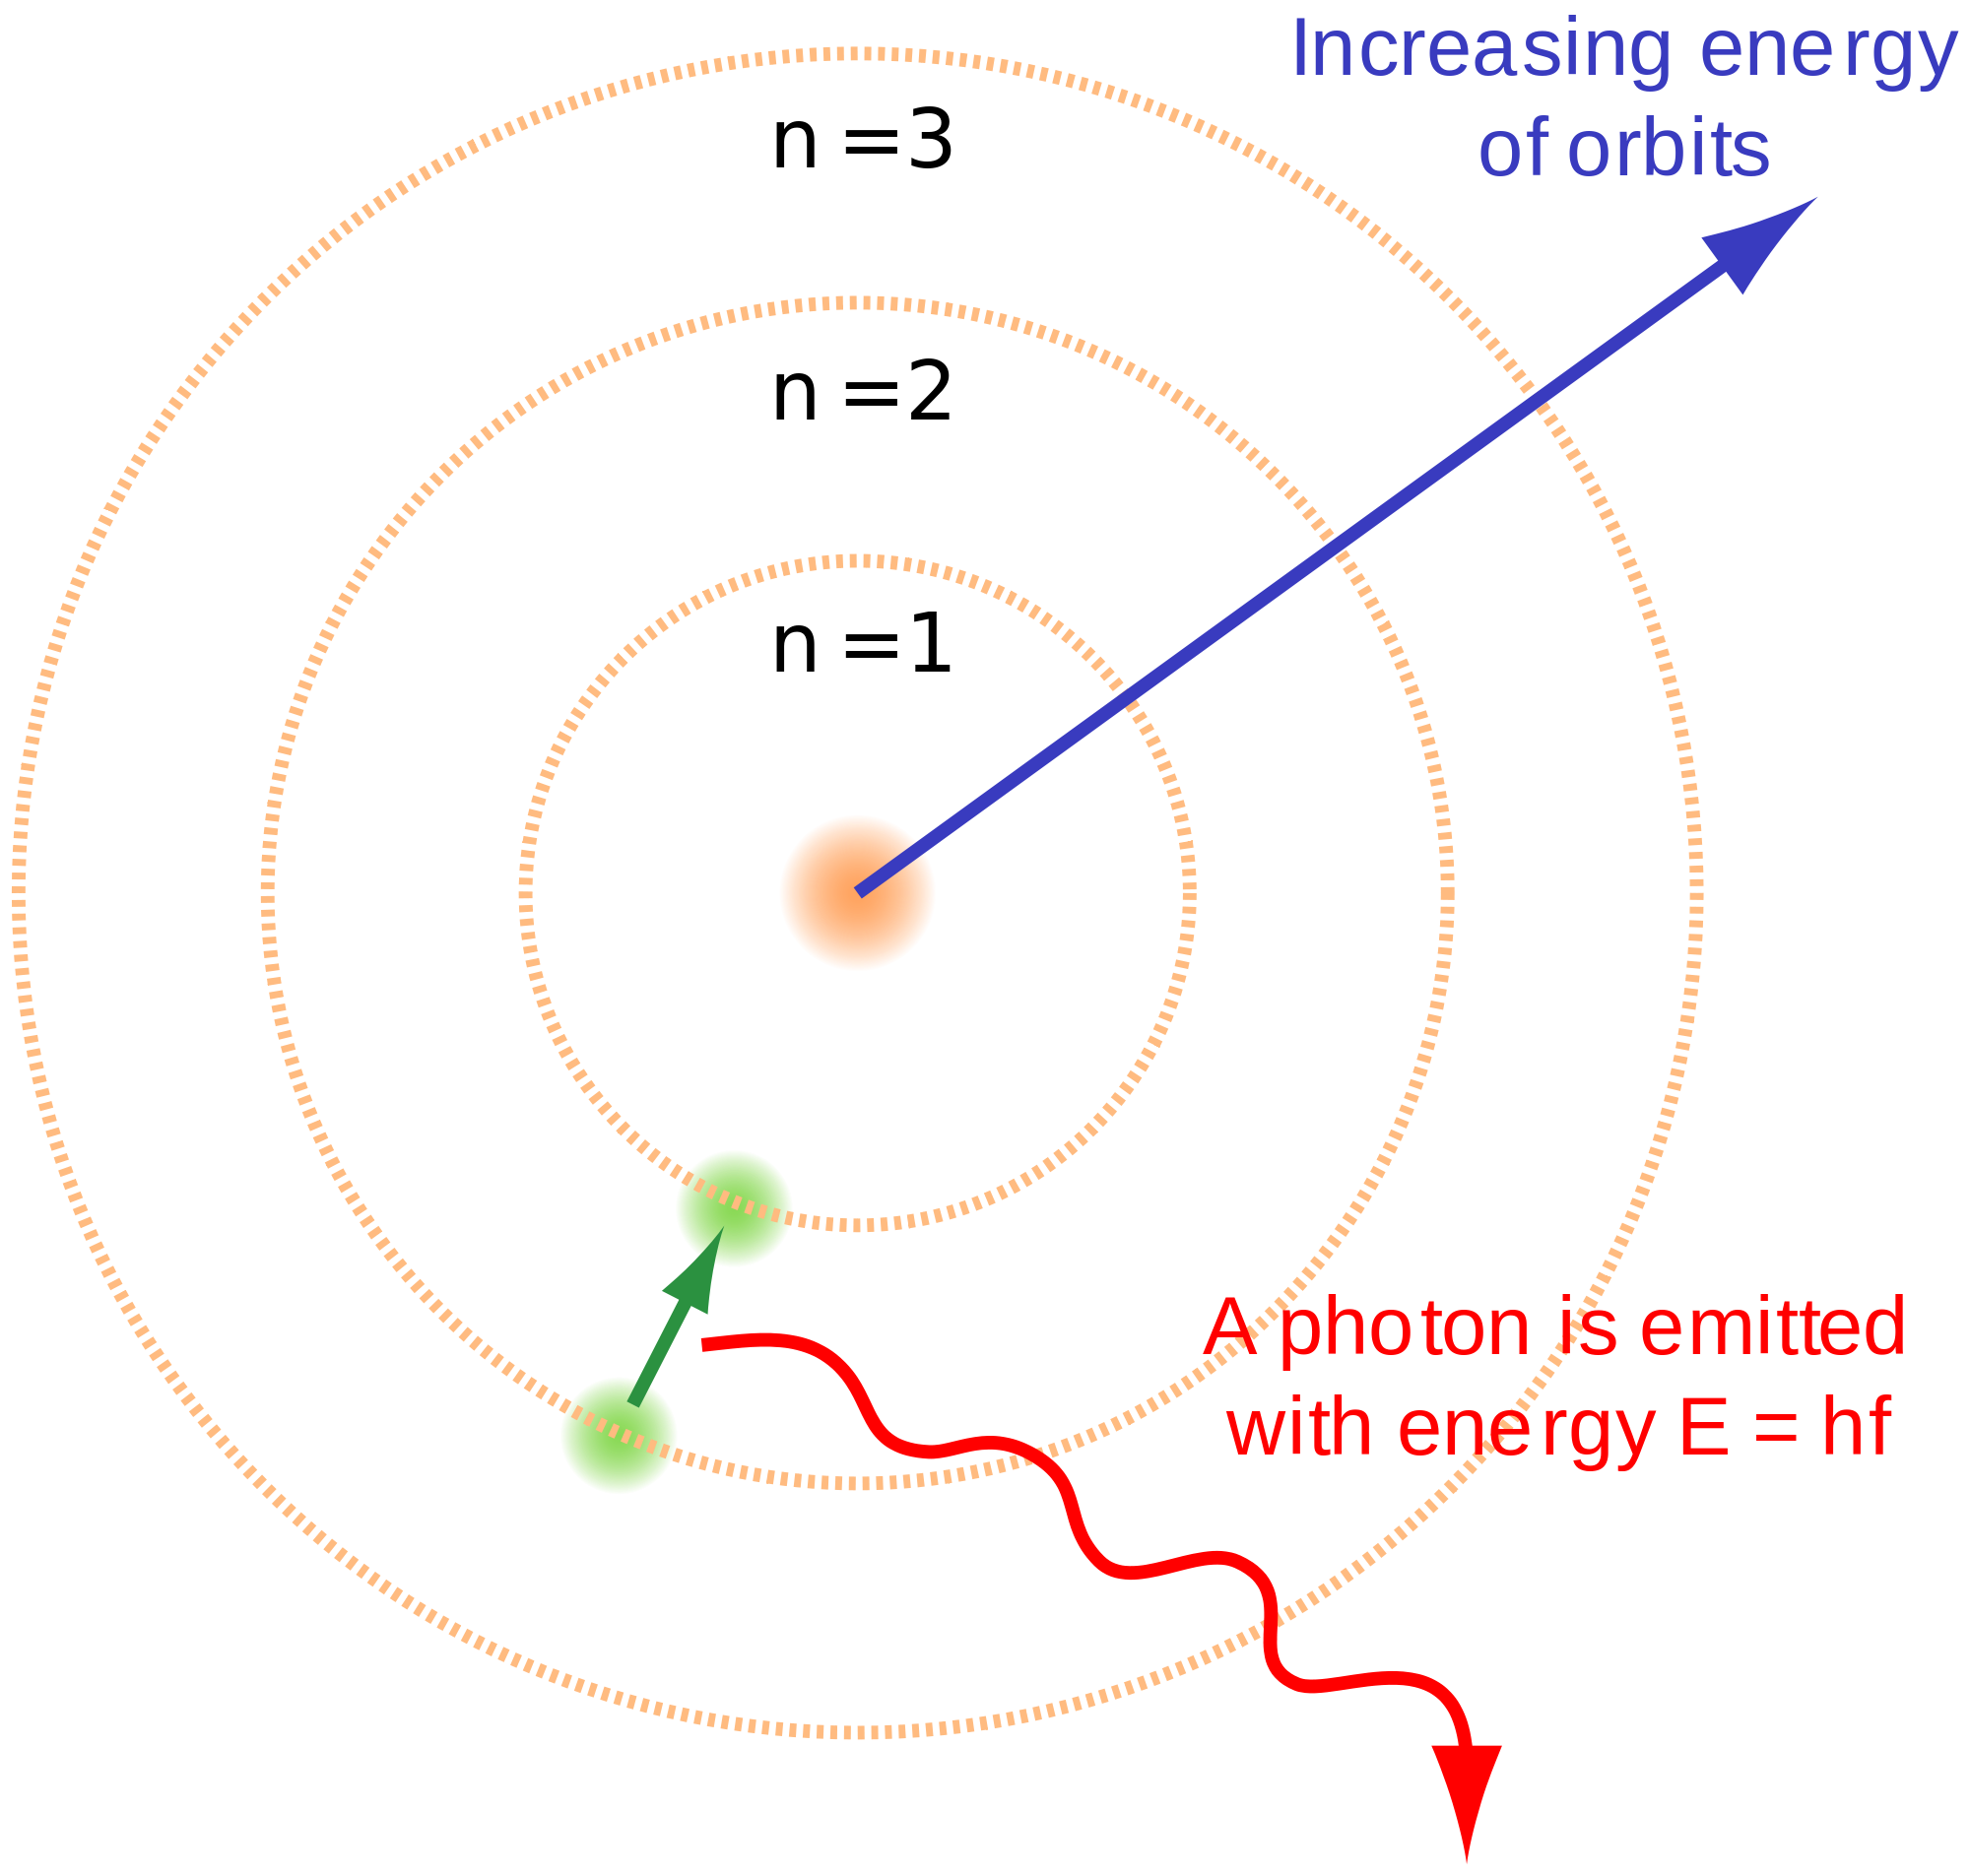 Einstein clipart atomic theory. Quantum mechanical model acur